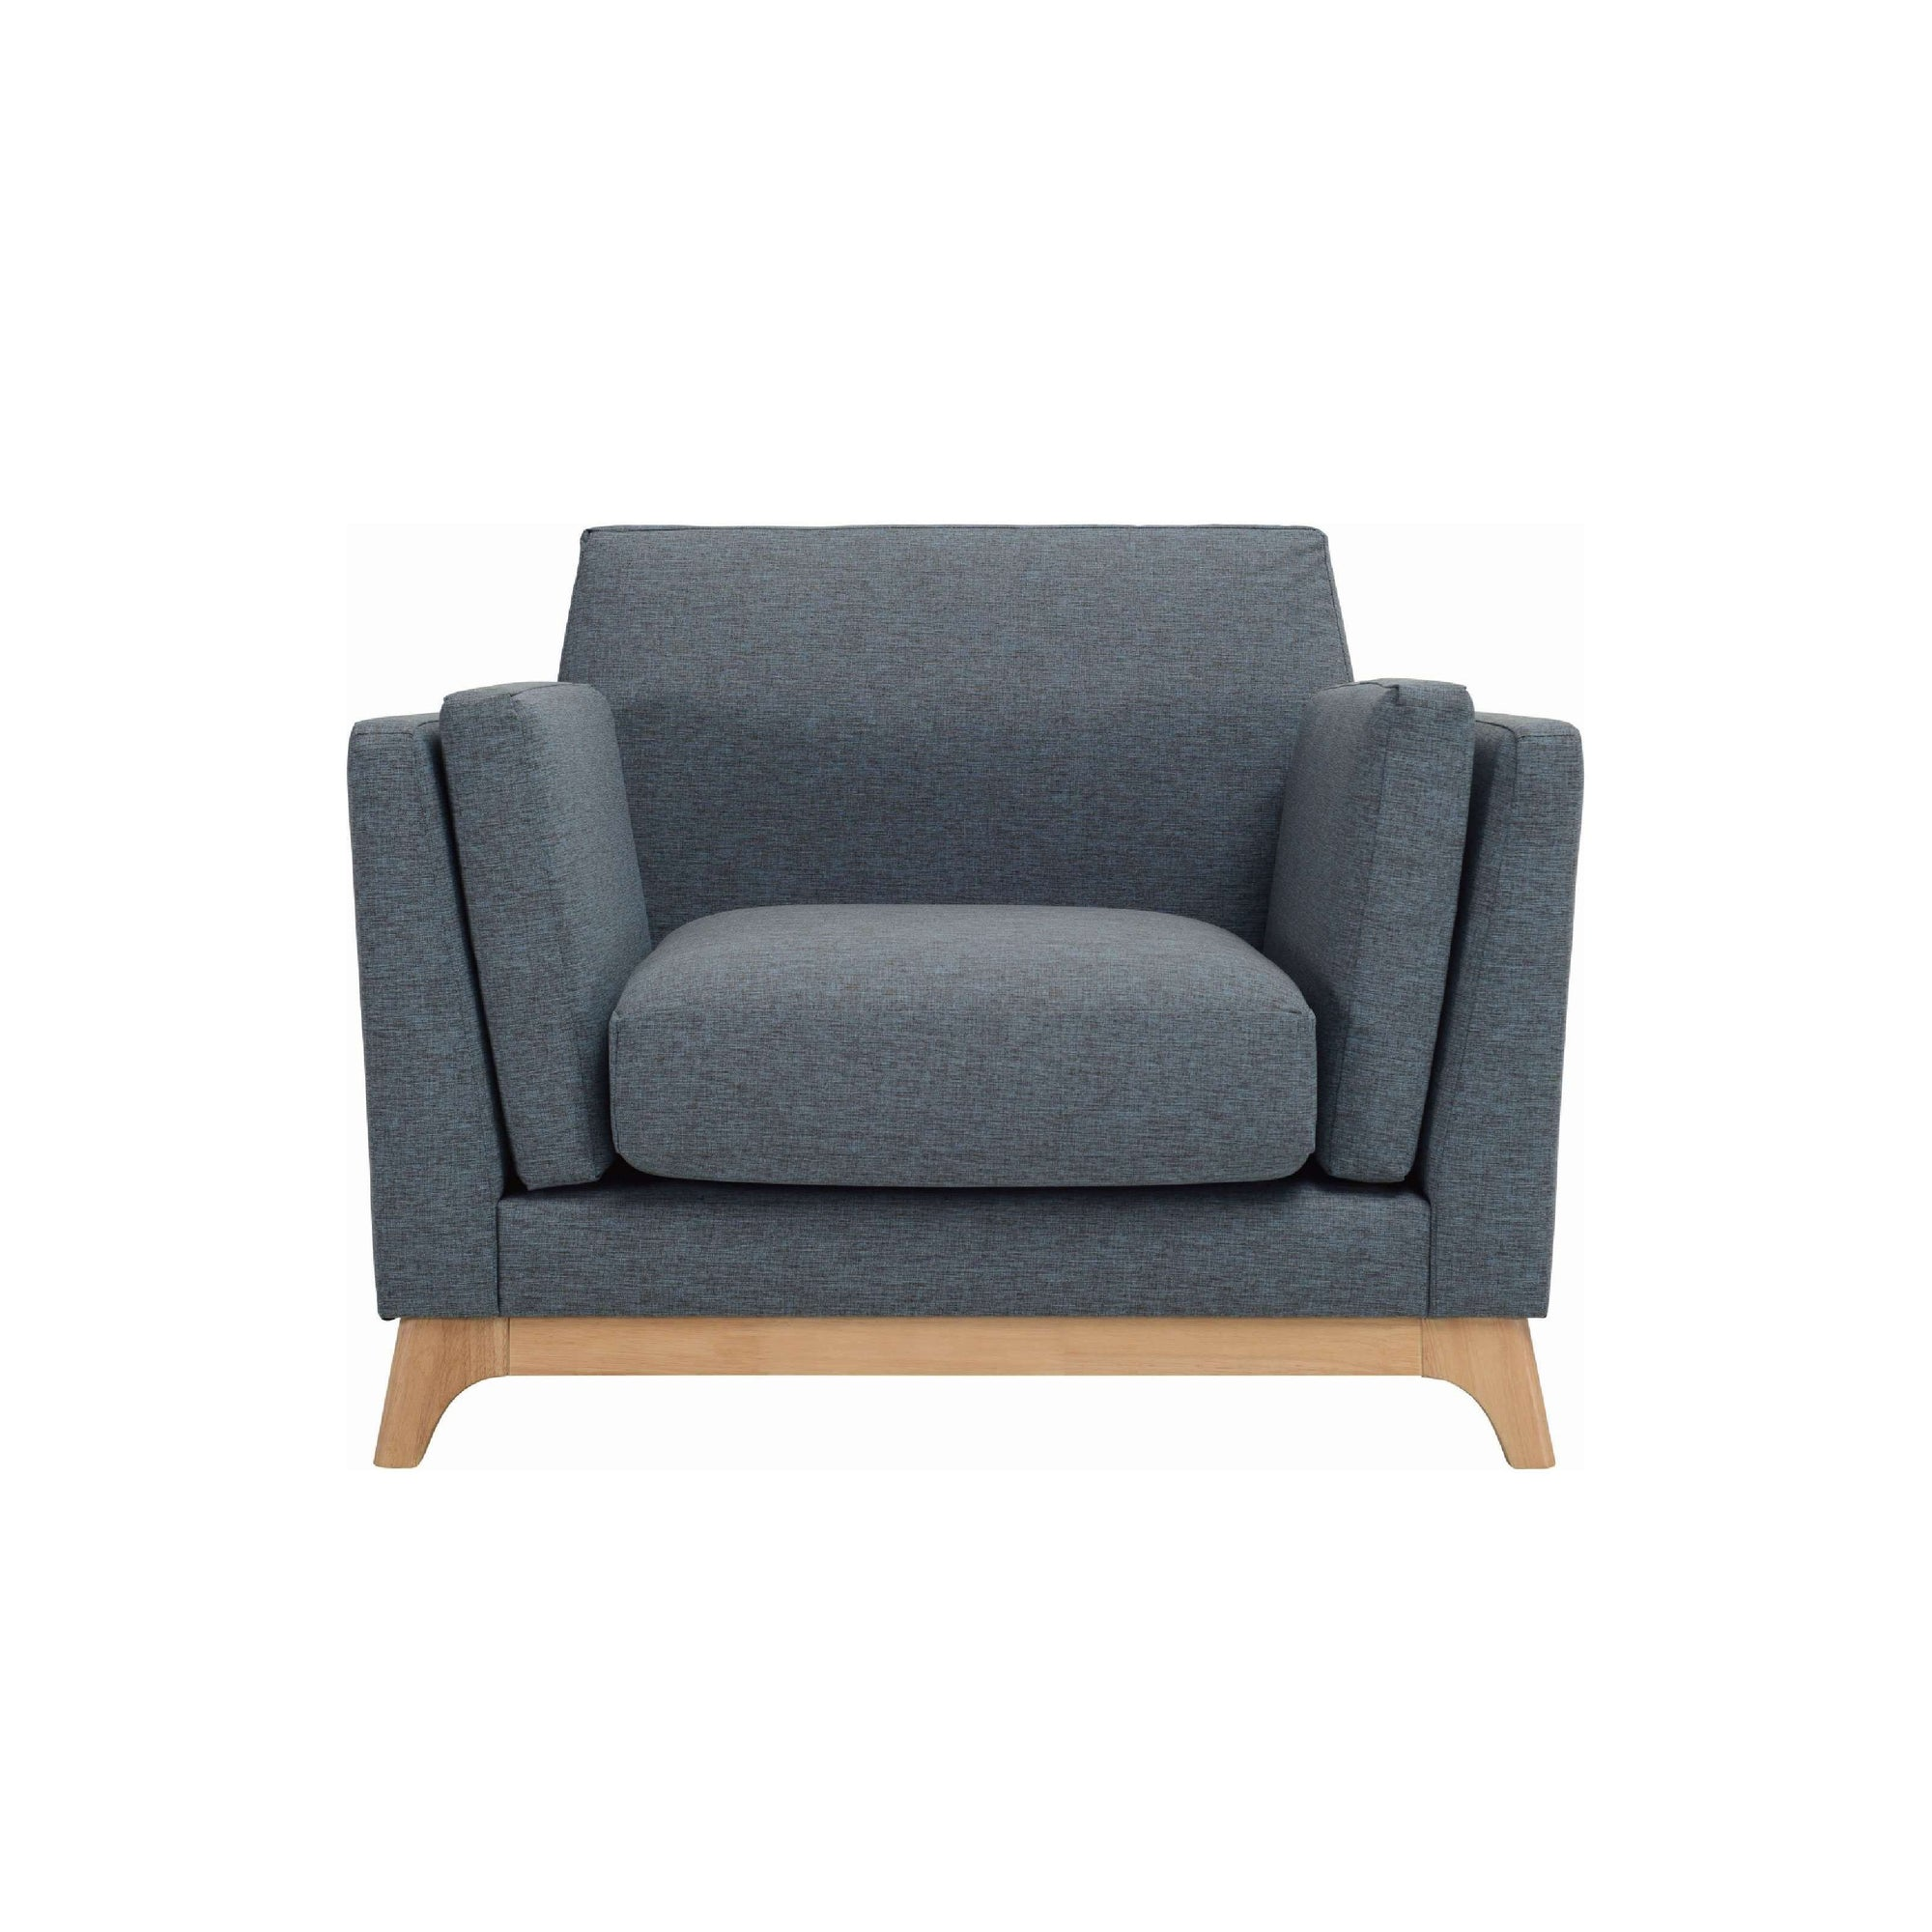 CENI 1 Seater Sofa in Whale Colour Delaine Fabric